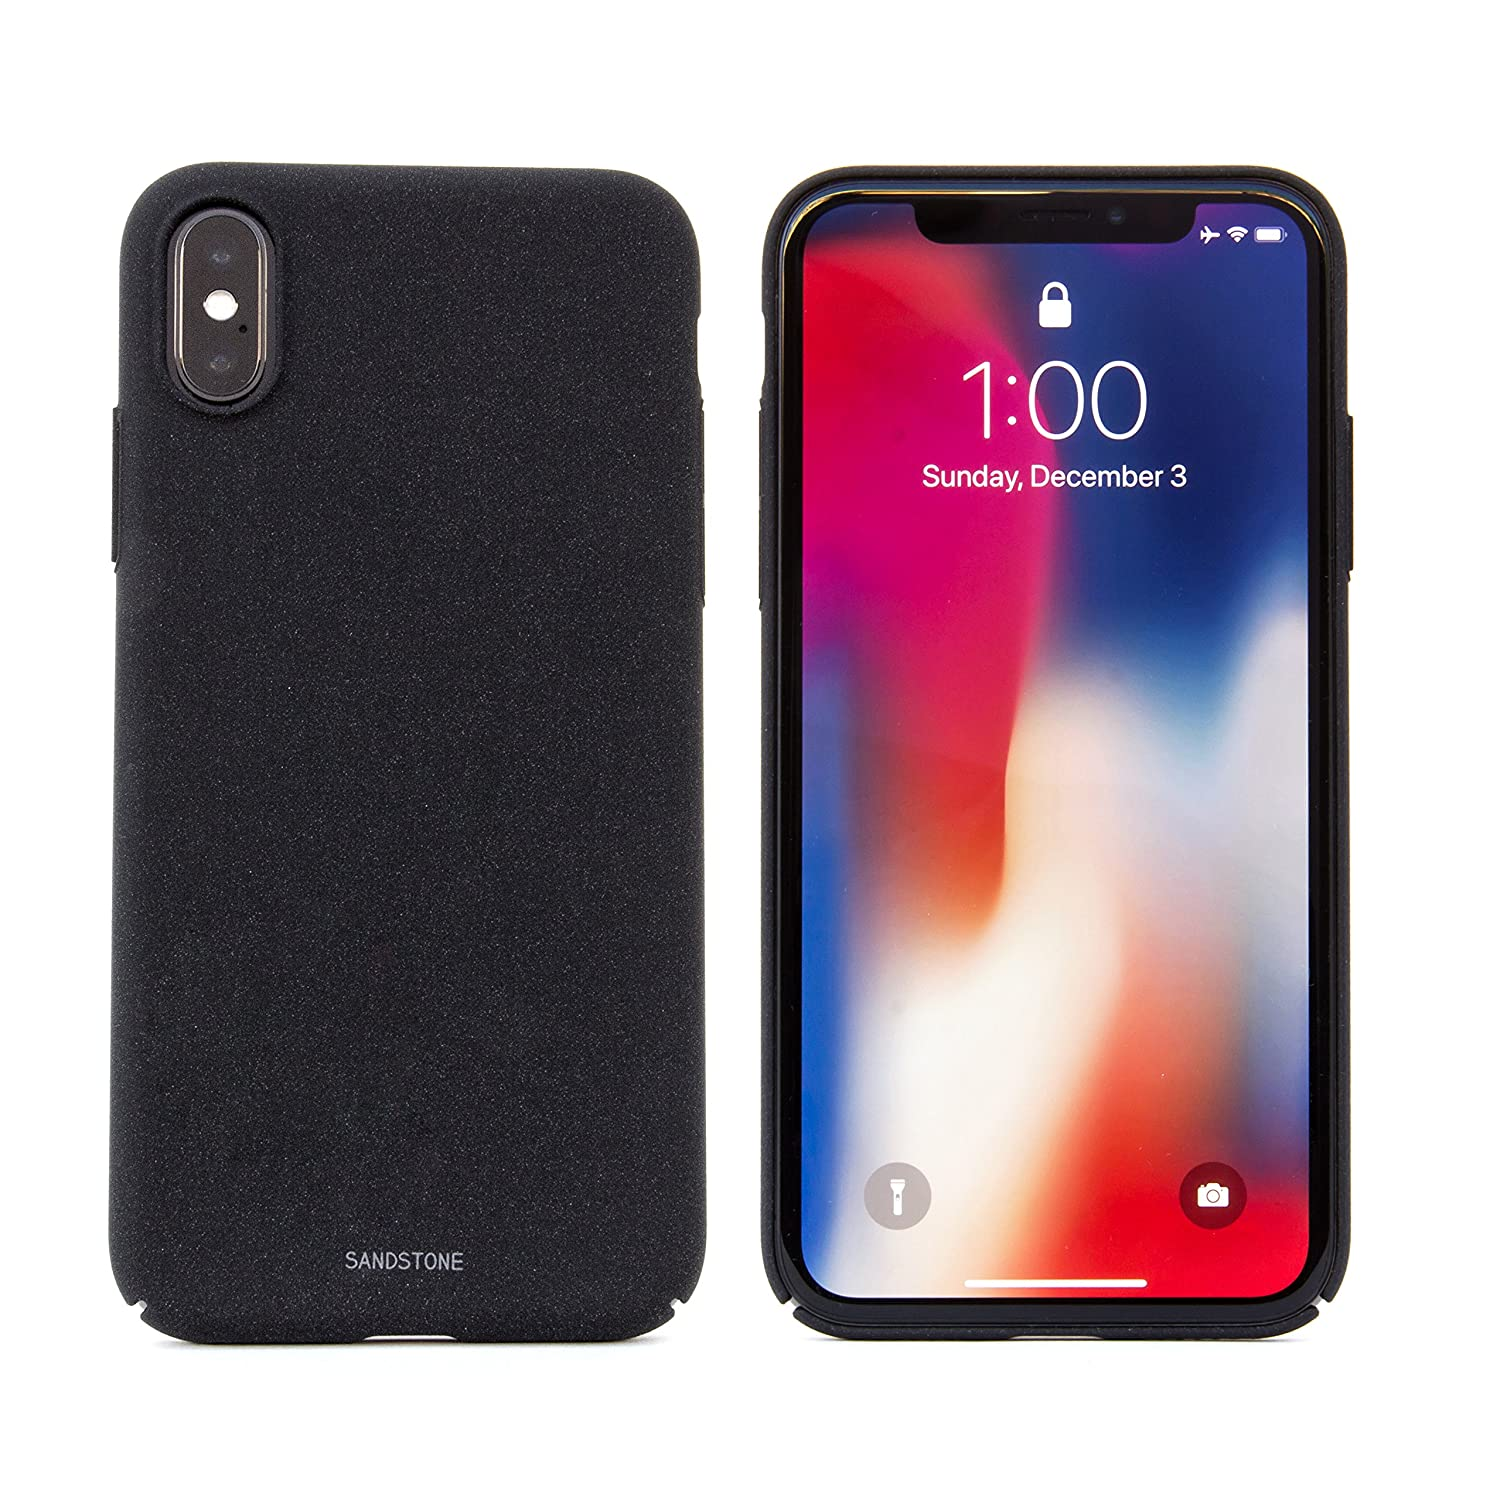 quality design cf443 fad19 SANDSTONE iPhone X Case with Thin High Friction Non: Amazon.in ...